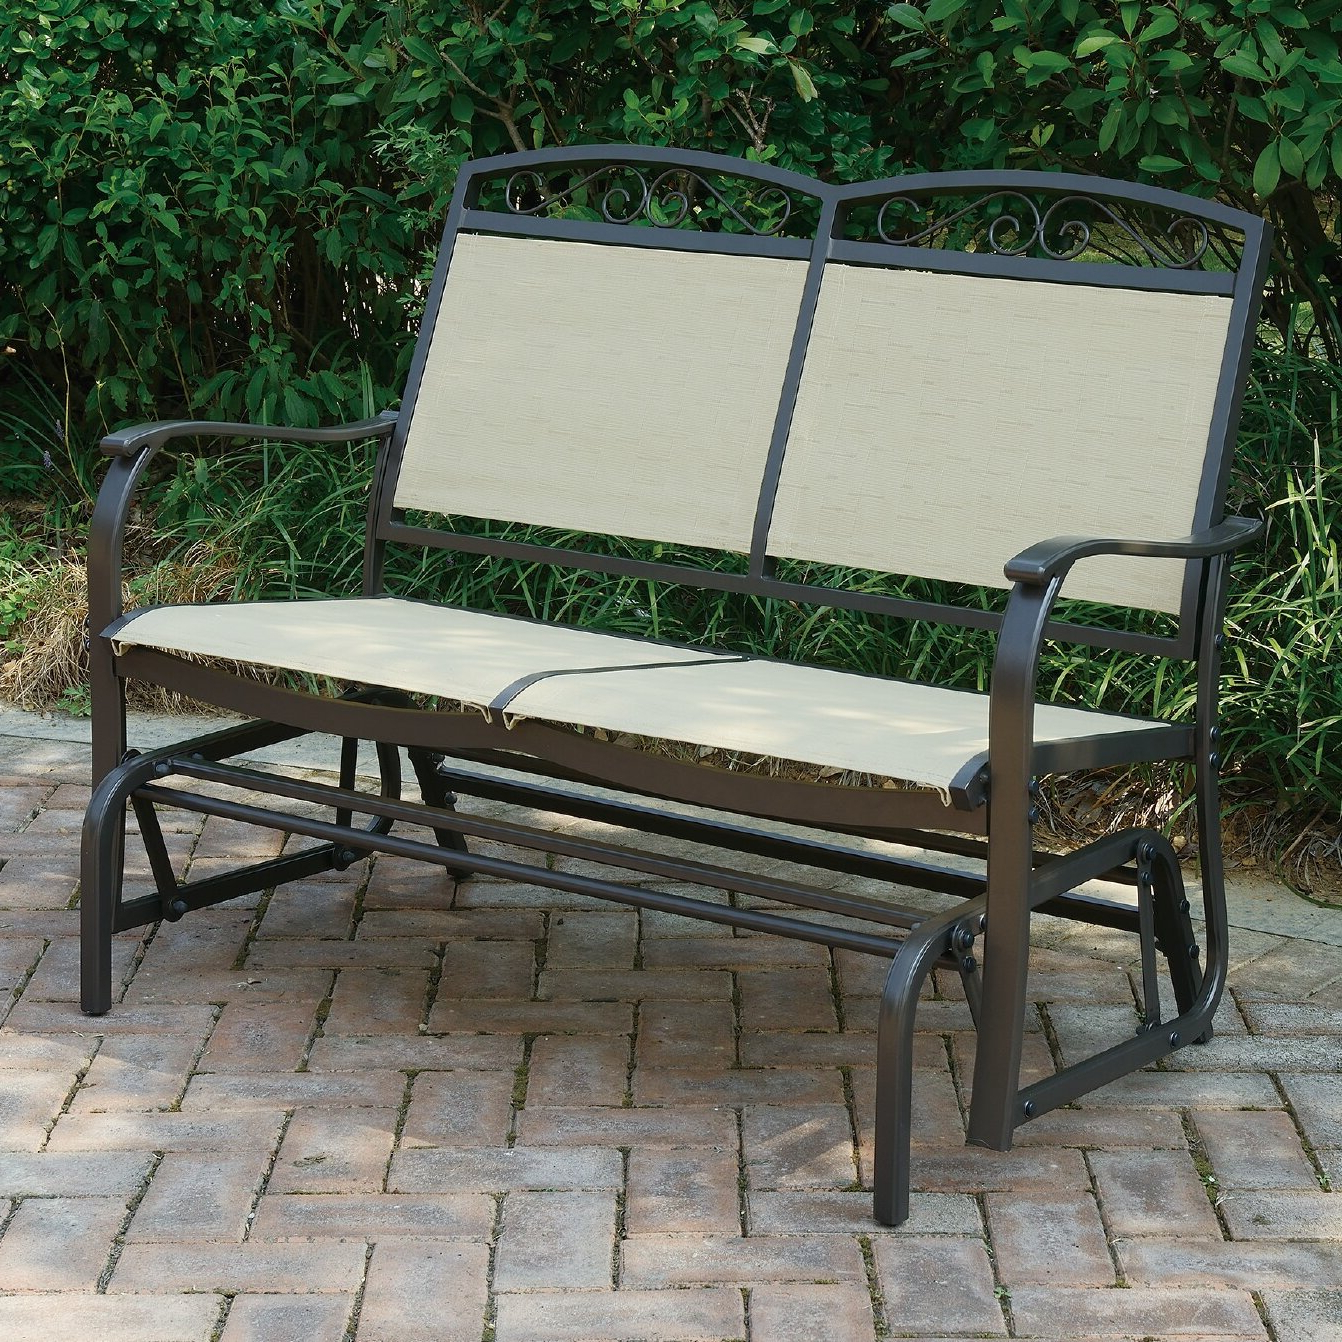 Outdoor Fabric Glider Benches Within 2020 Wayzata Outdoor Fabric Glider Bench (Gallery 8 of 30)